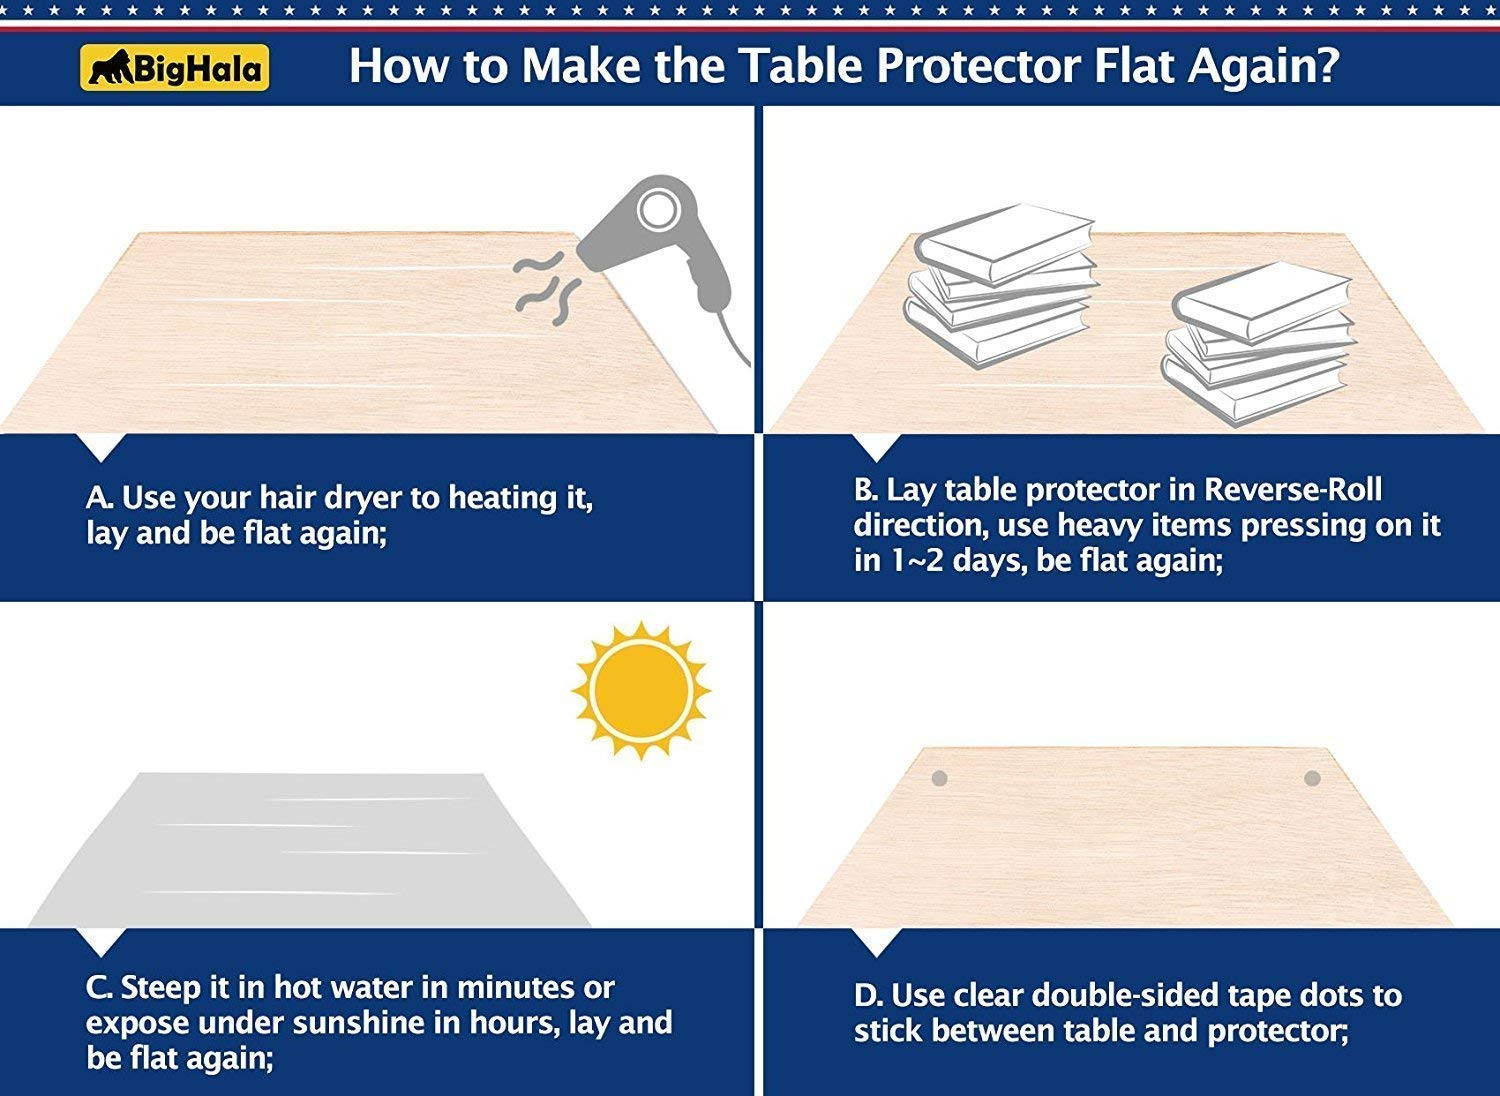 how to reverse hardwood floor direction of amazon com table protector clear vinyl plastic tablecloth rectangle inside amazon com table protector clear vinyl plastic tablecloth rectangle wood furniture stain protector water resistant wipeable cover glass top coffee end